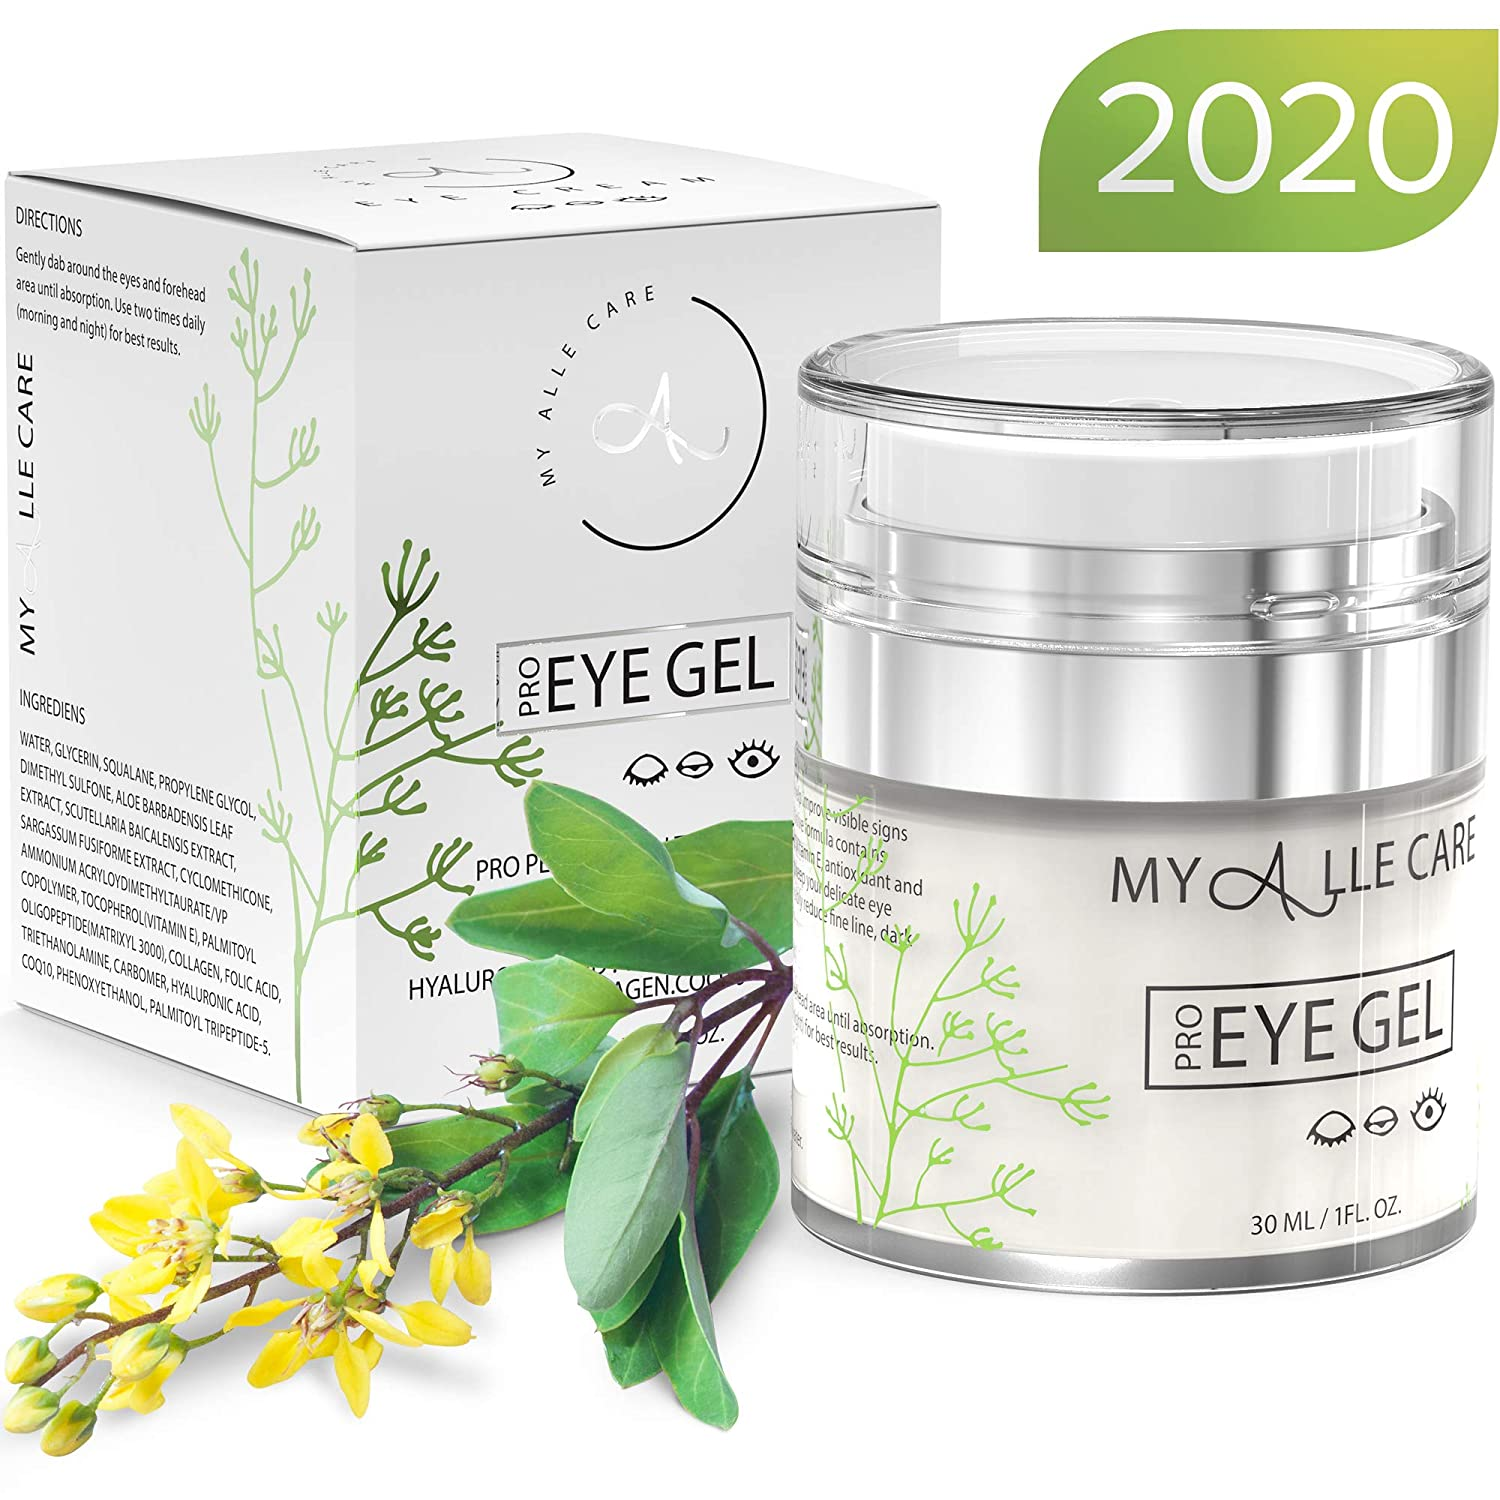 Eye Gel with Hyaluronic Acid, Reduce Dark Circles, Puffiness and Eye Bags. Anti Wrinkle Under Eye Treatment, Hydrating Gel with Collagen, Aloe and Vitamin E, Anti Aging Cream for Men & Women